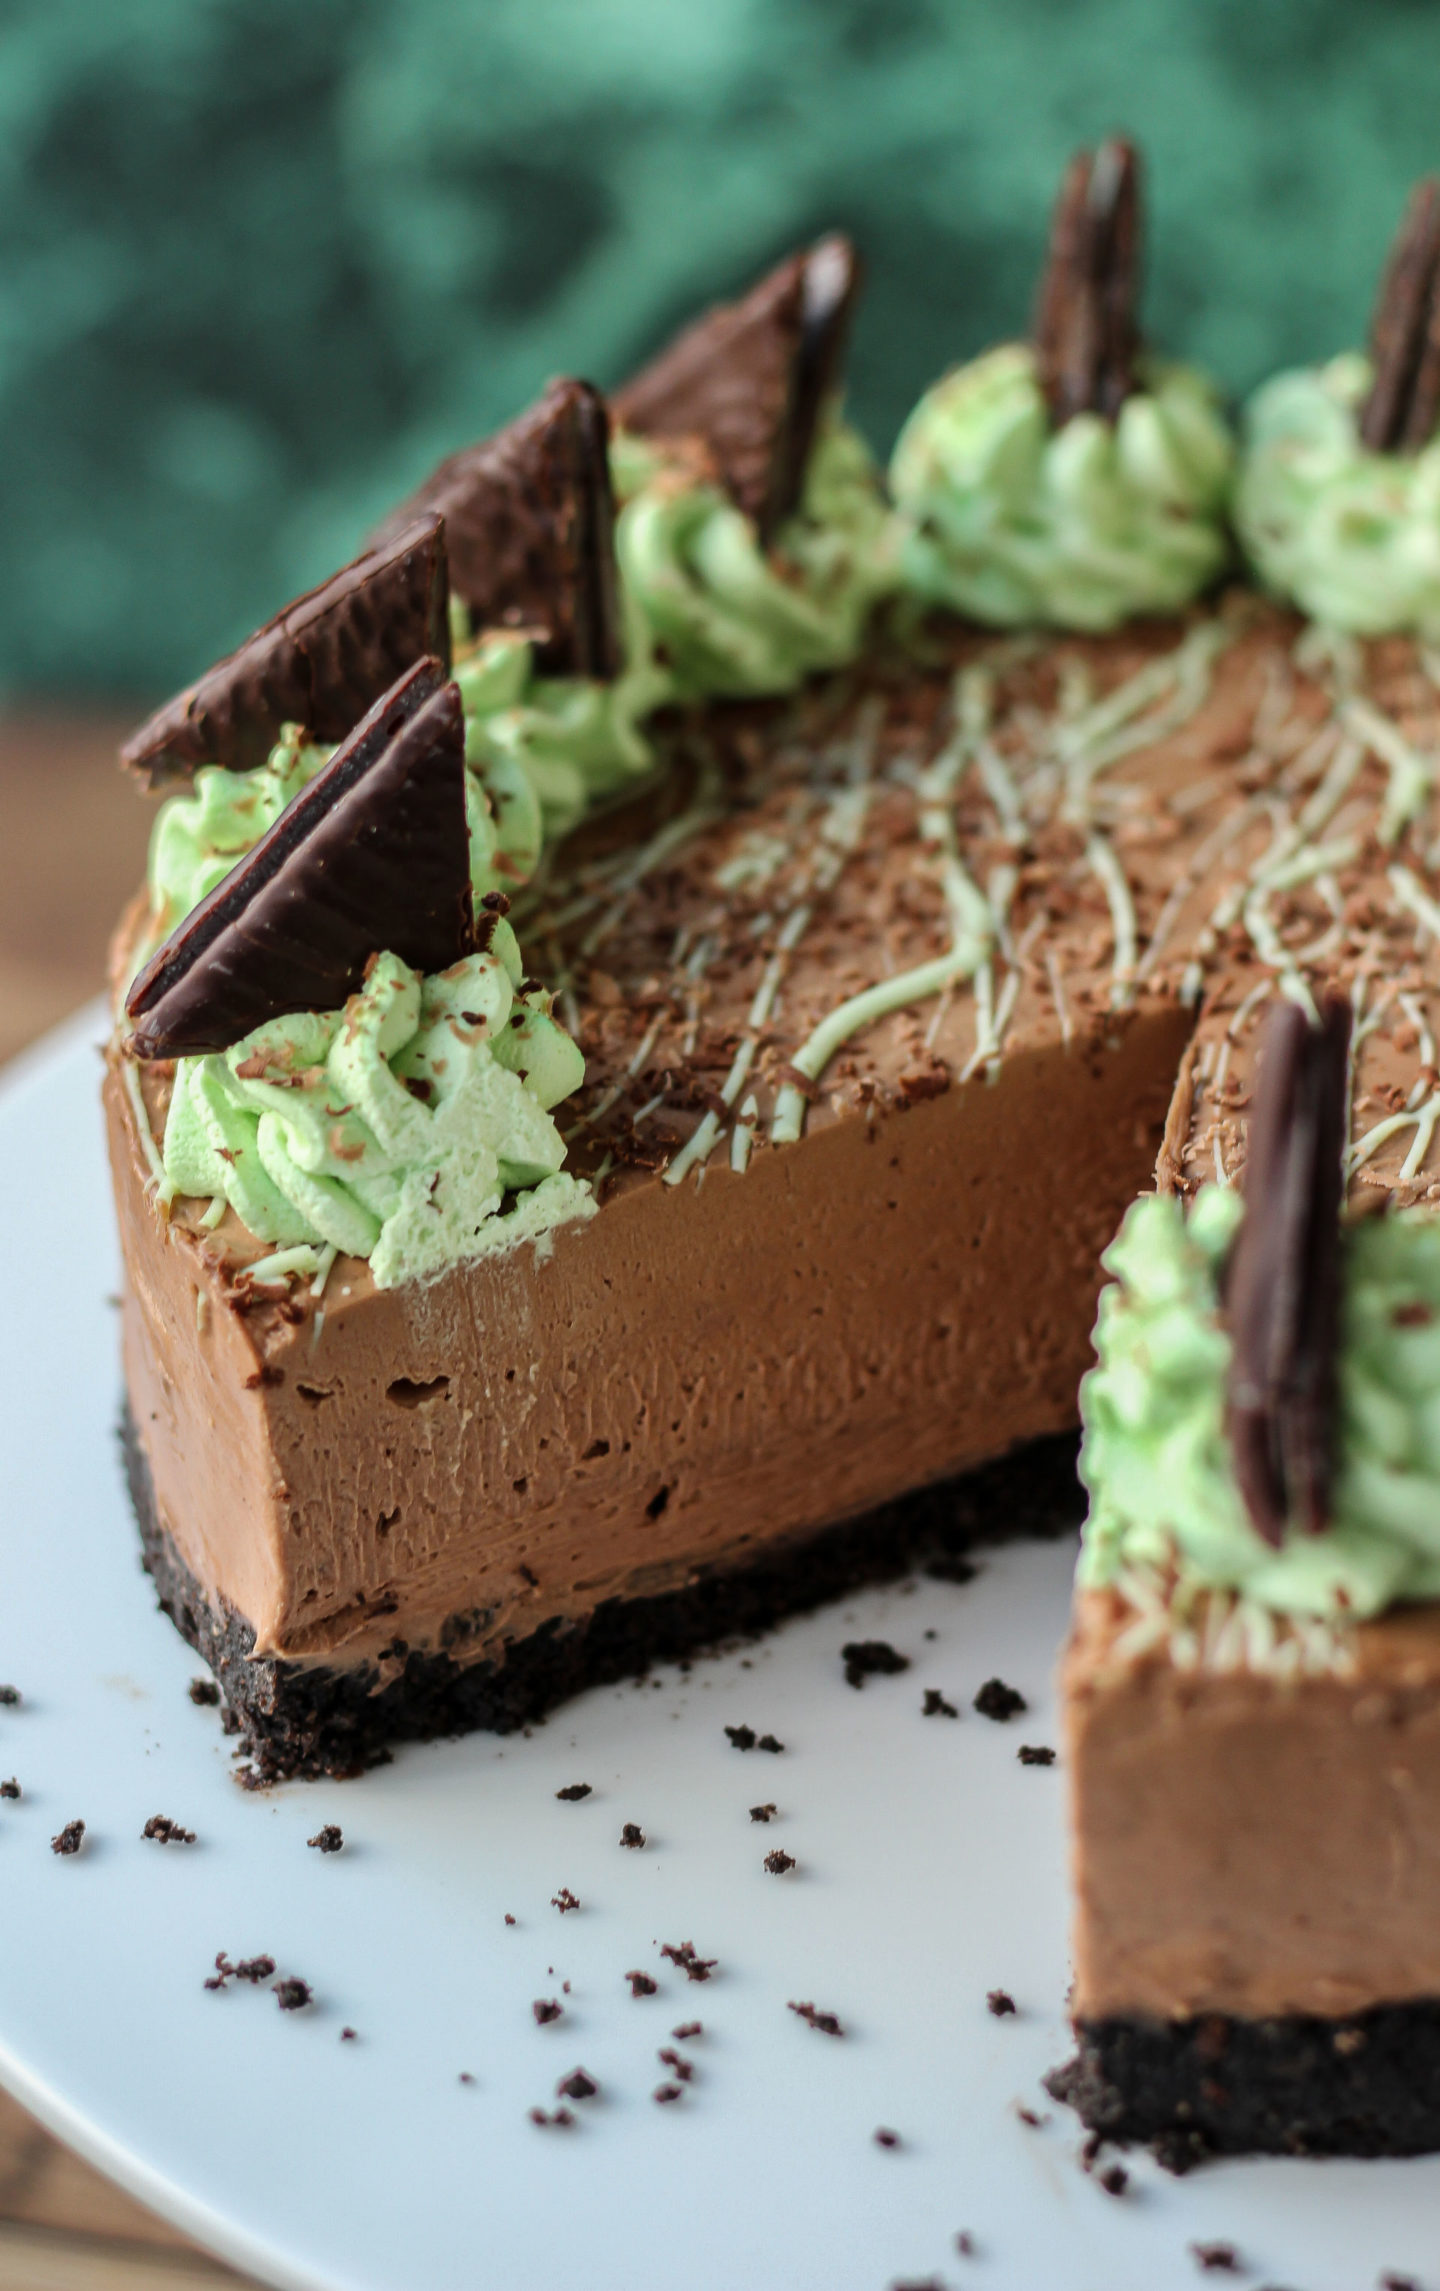 Close up showing inside of no-bake mint chocolate cheesecake